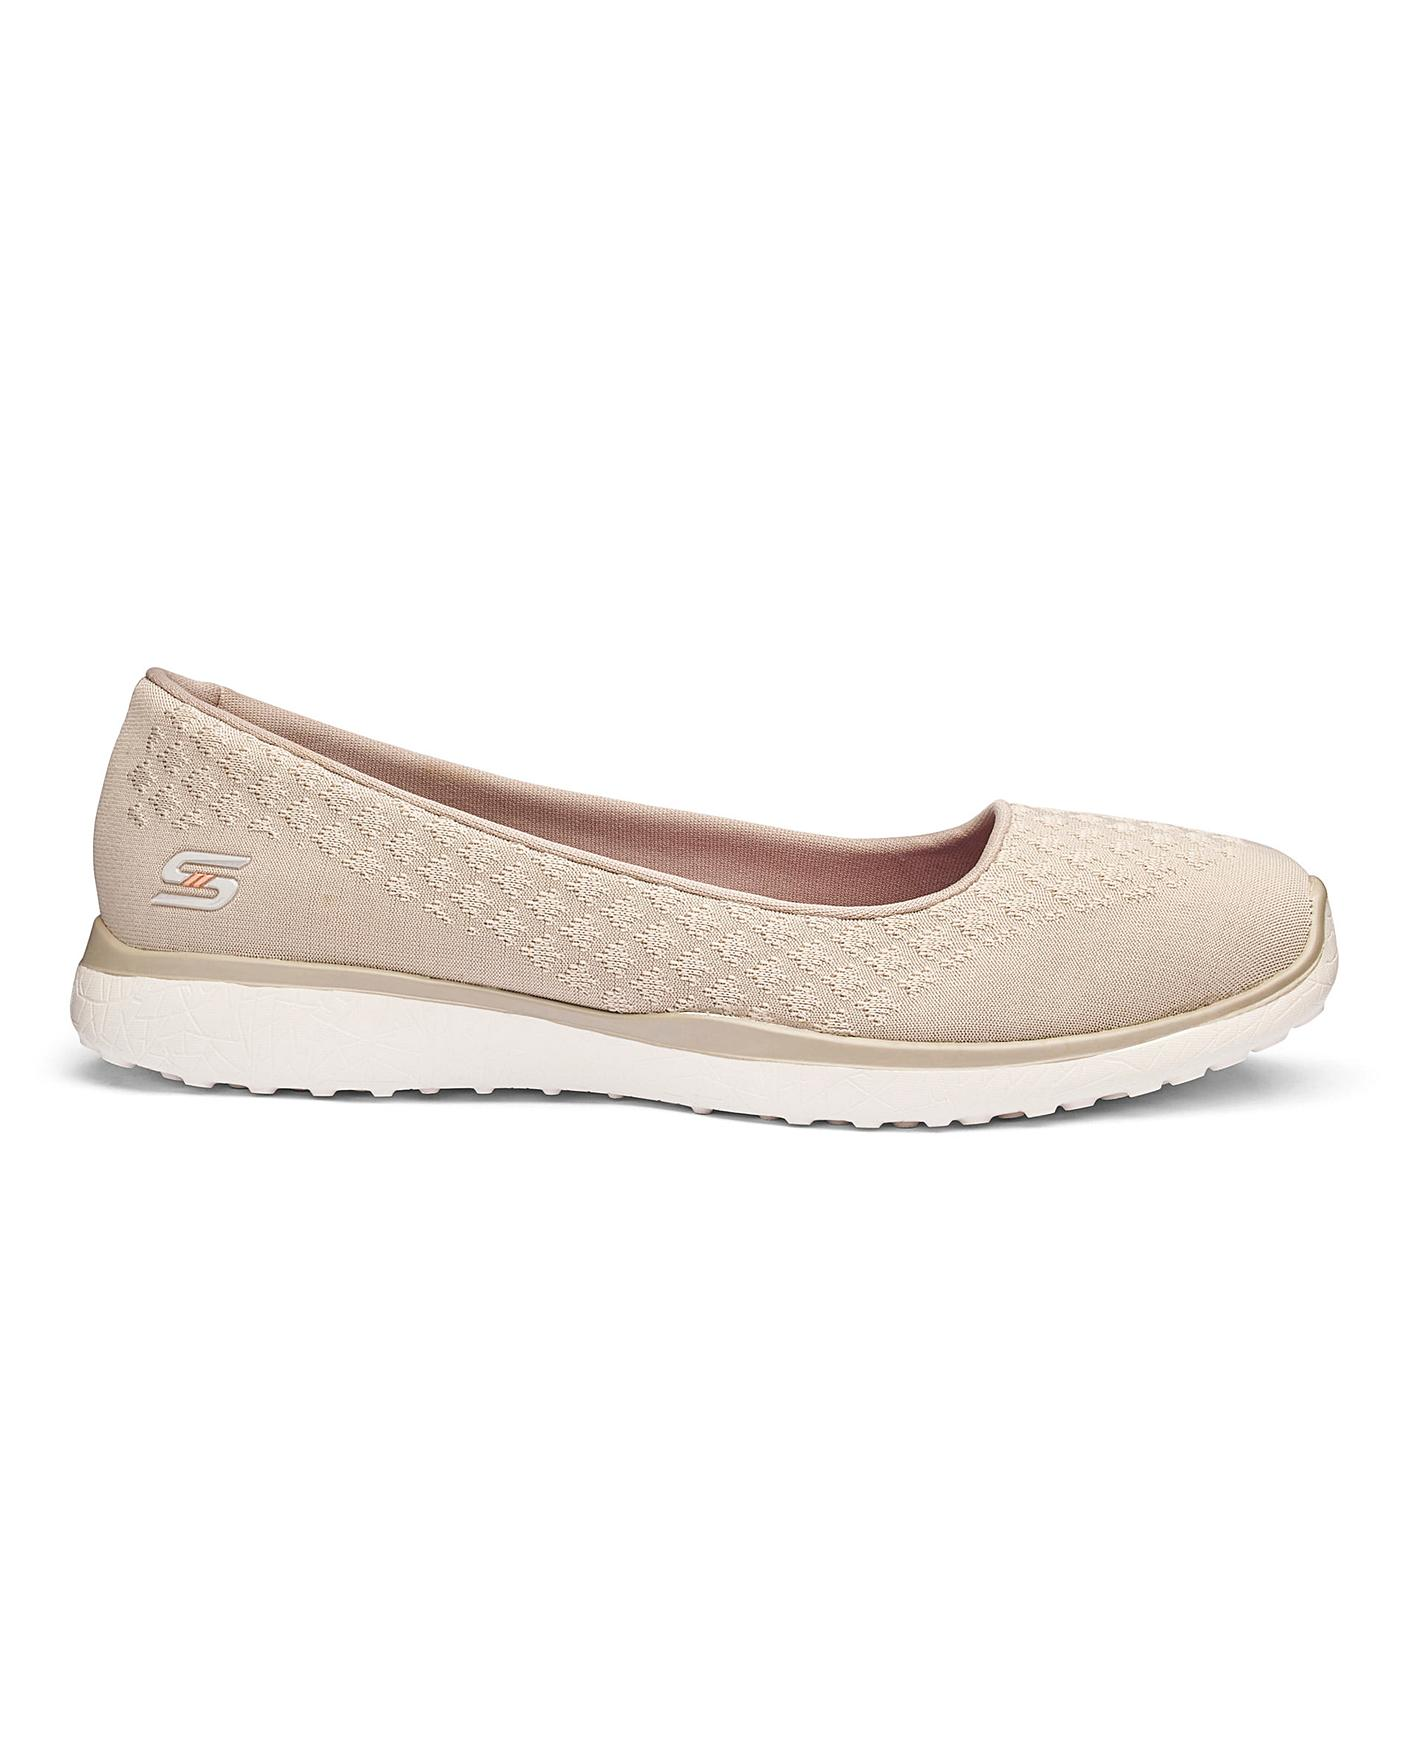 . Amasar Iniciativa  buy > skechers microburst one up uk, Up to 63% OFF